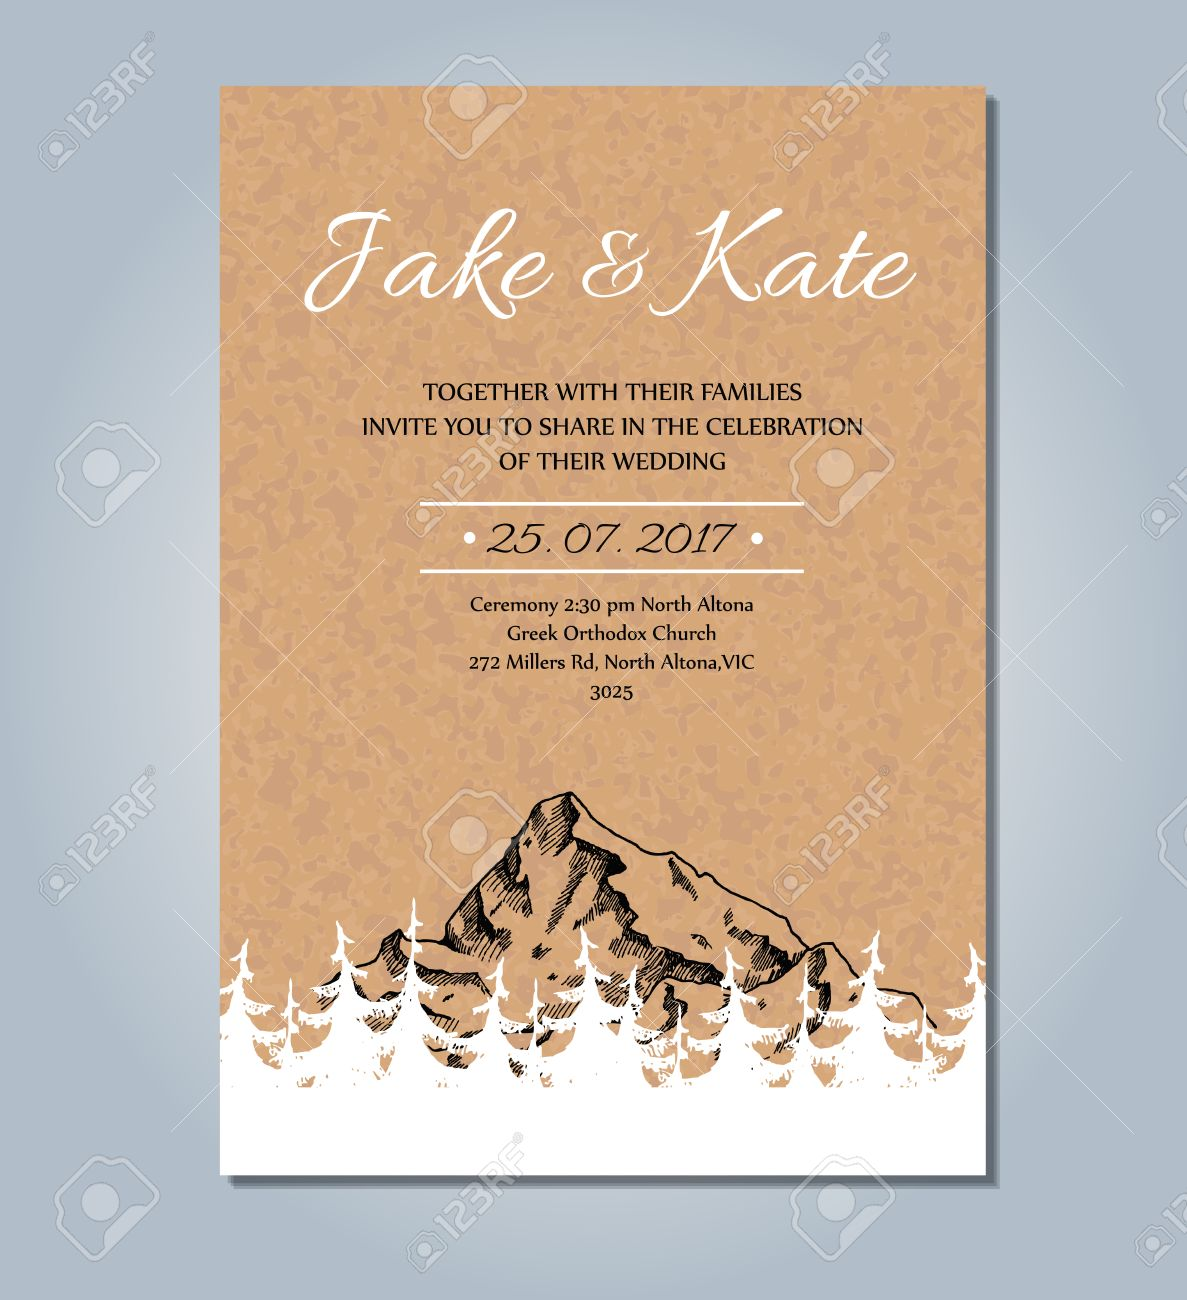 Mountain wedding invitation vector rustic card template wedding mountain wedding invitation vector rustic card template wedding card sketch illustration with mountain and stopboris Image collections